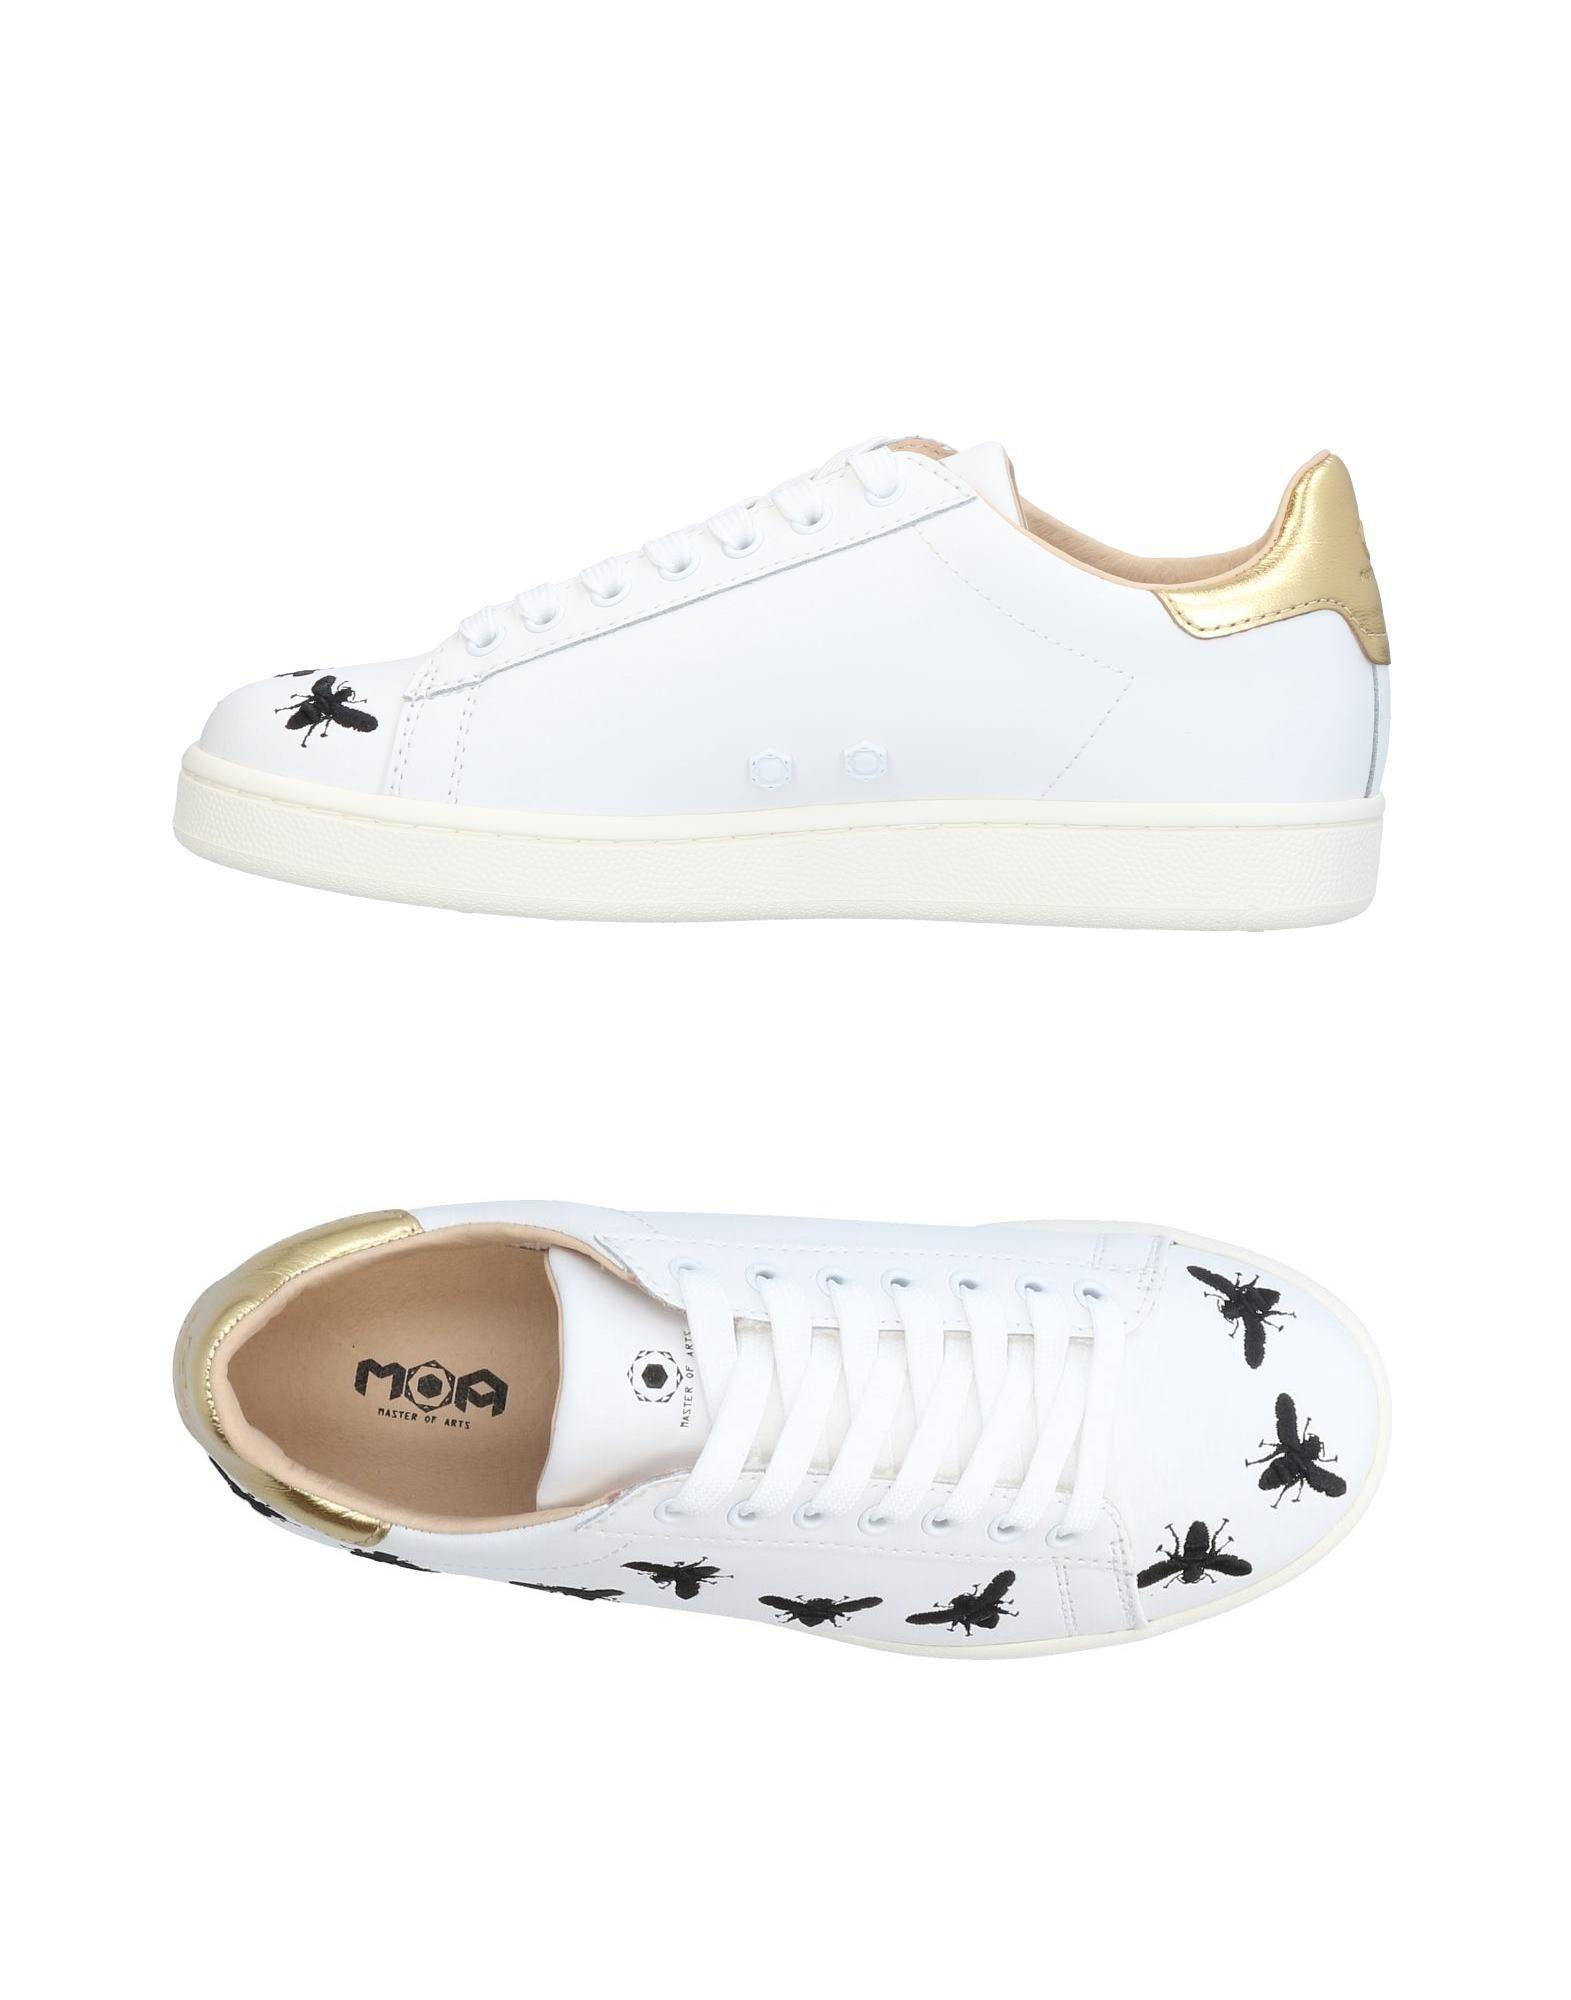 Moa Master Of Arts Sneakers In White